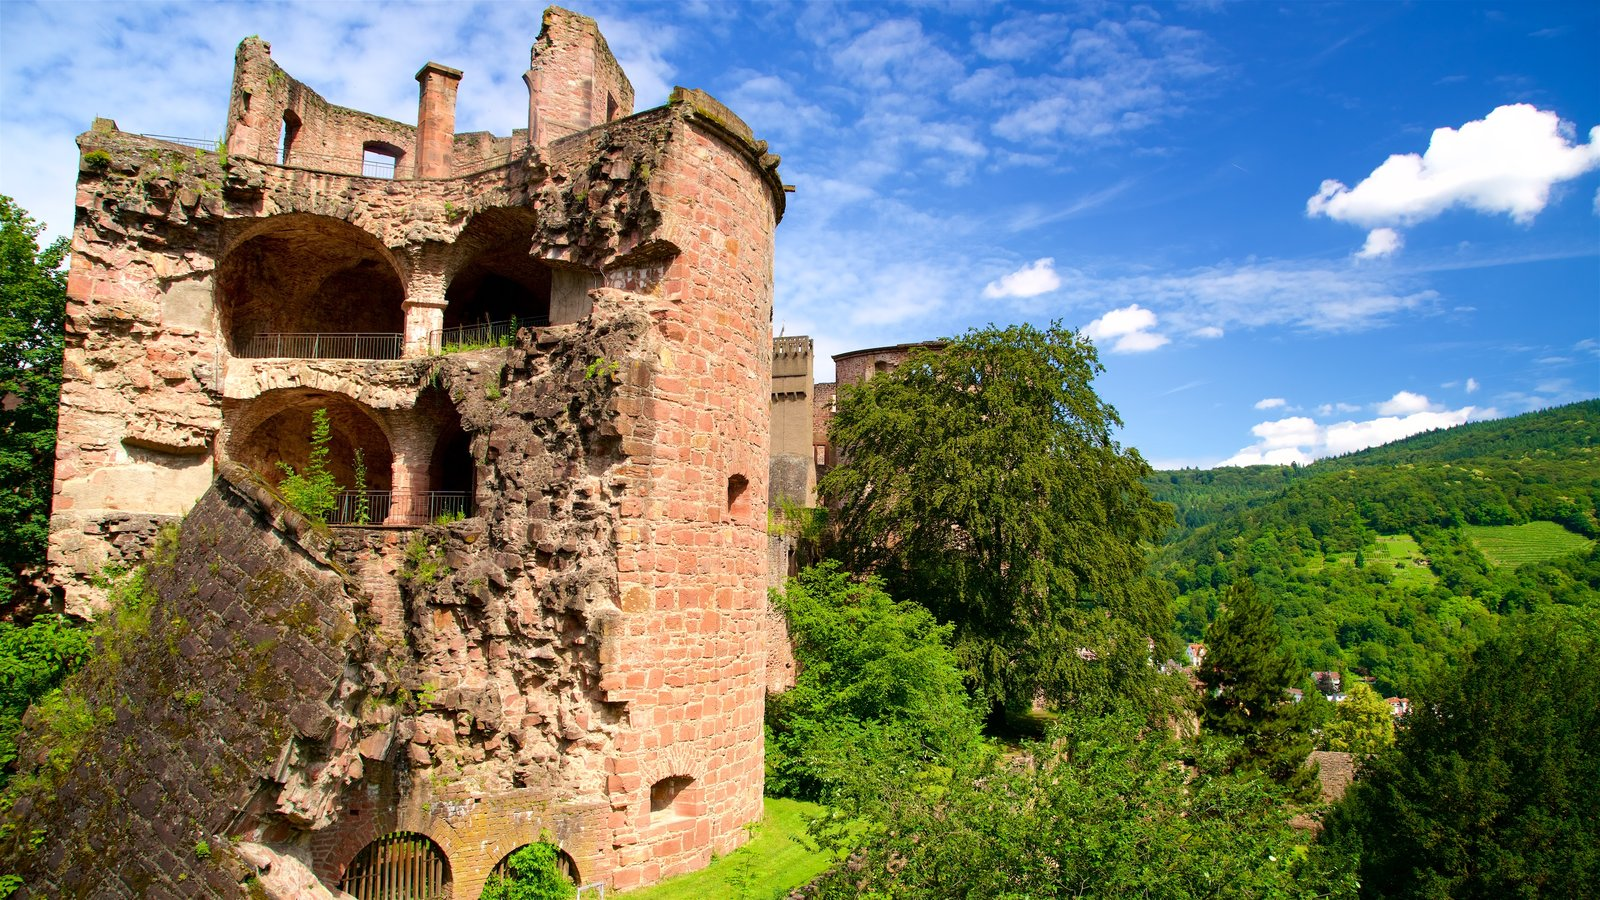 Heidelberg Castle showing a ruin and tranquil scenes